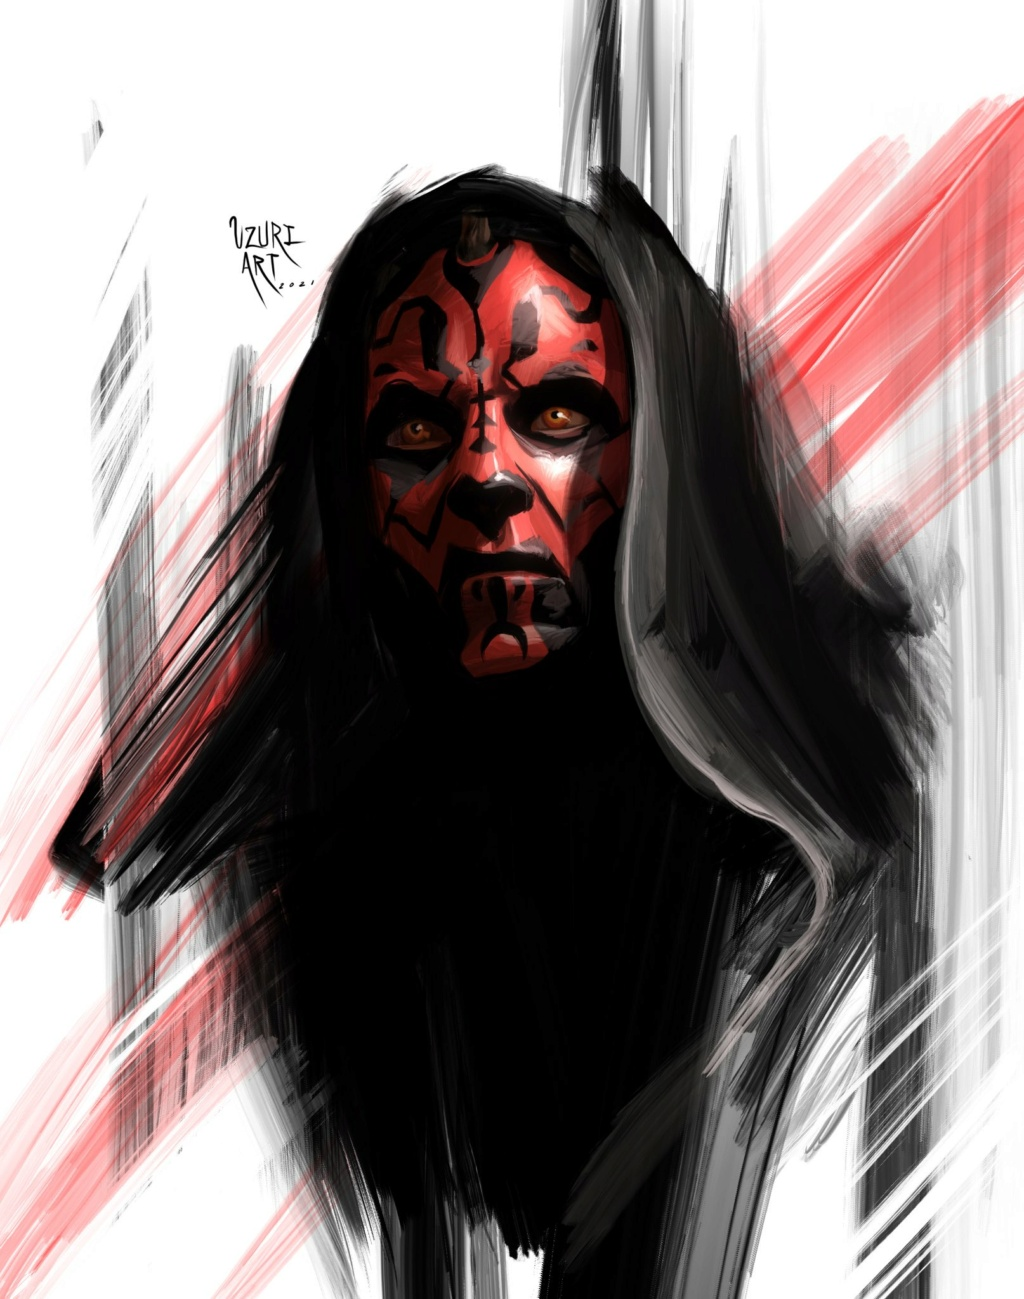 Digital Art par UZURI ART - Star Wars Uzuri_36